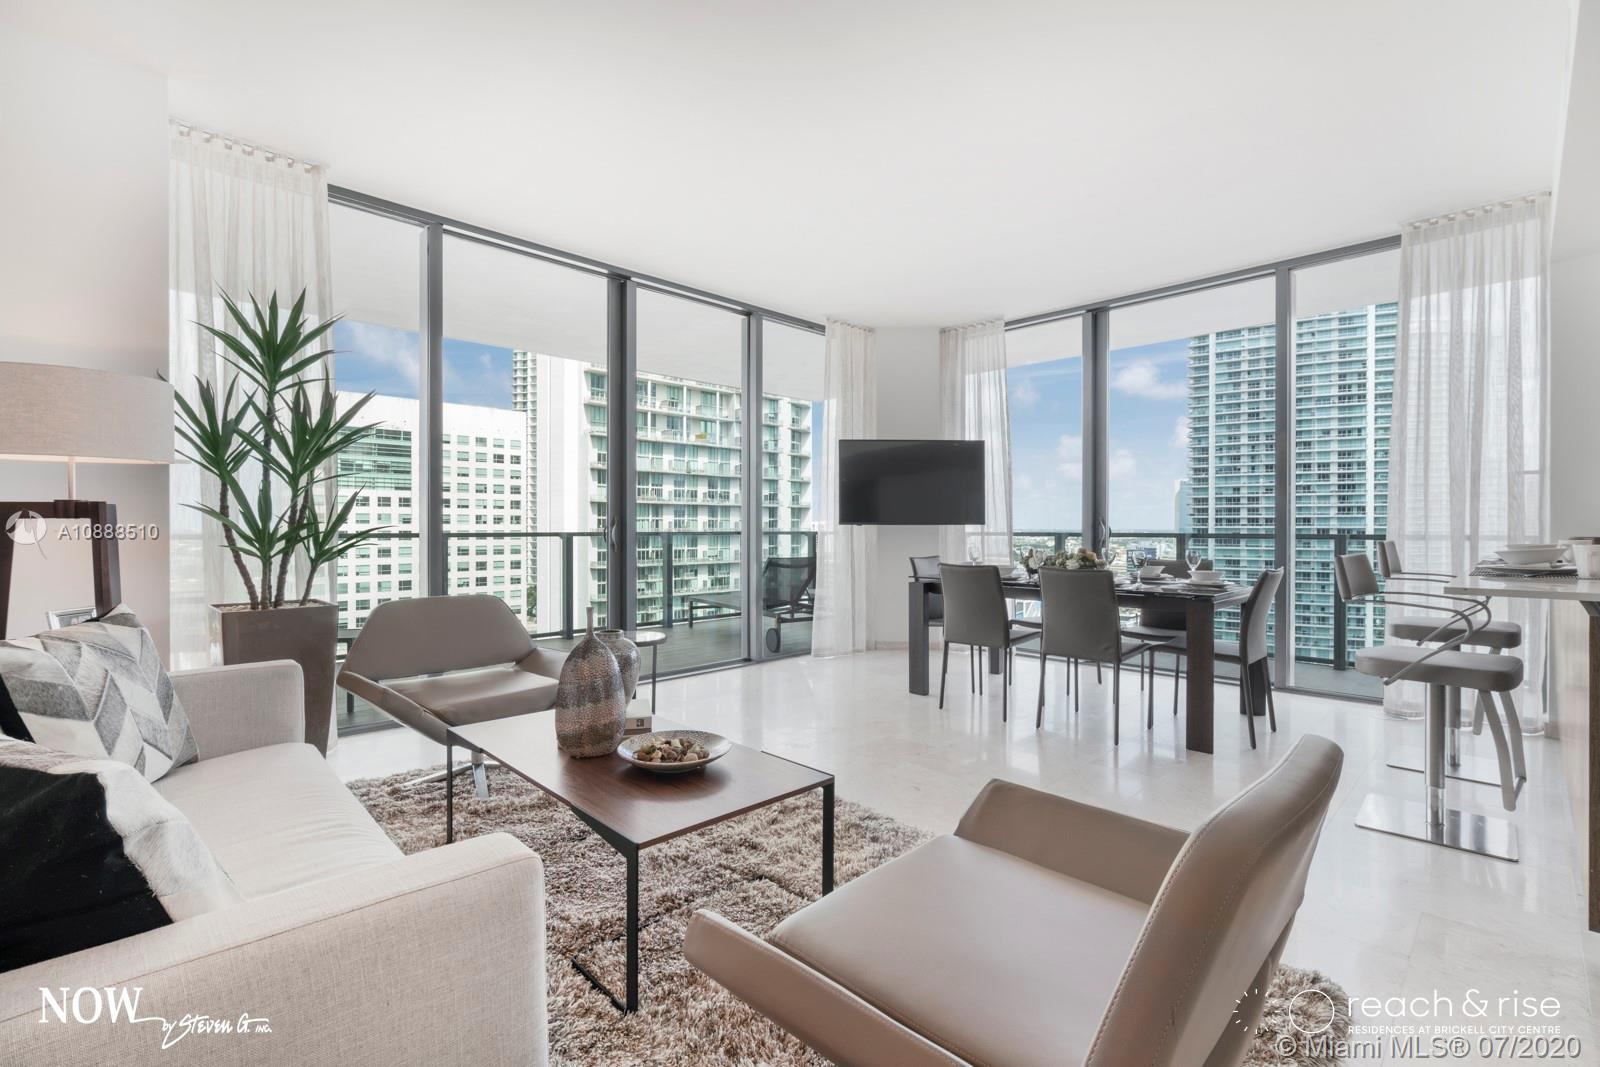 Rise Brickell City Centre #2412 - 88 SW 7 ST #2412, Miami, FL 33131